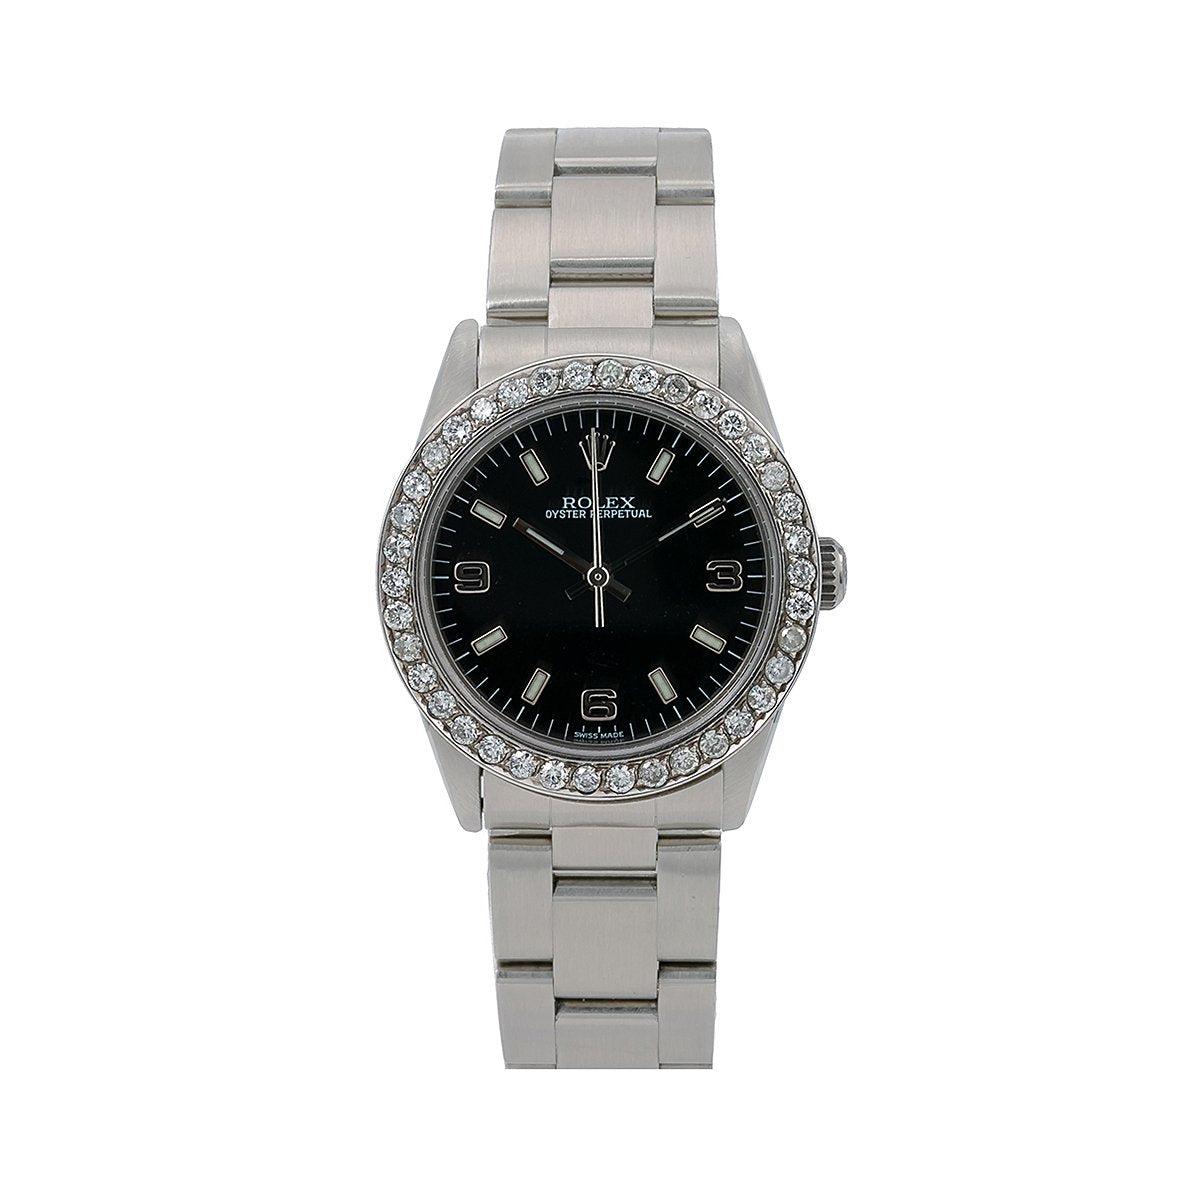 Rolex Oyster Perpetual Diamond Watch, 77080 31mm, Black Dial With 0.90 CT Diamonds